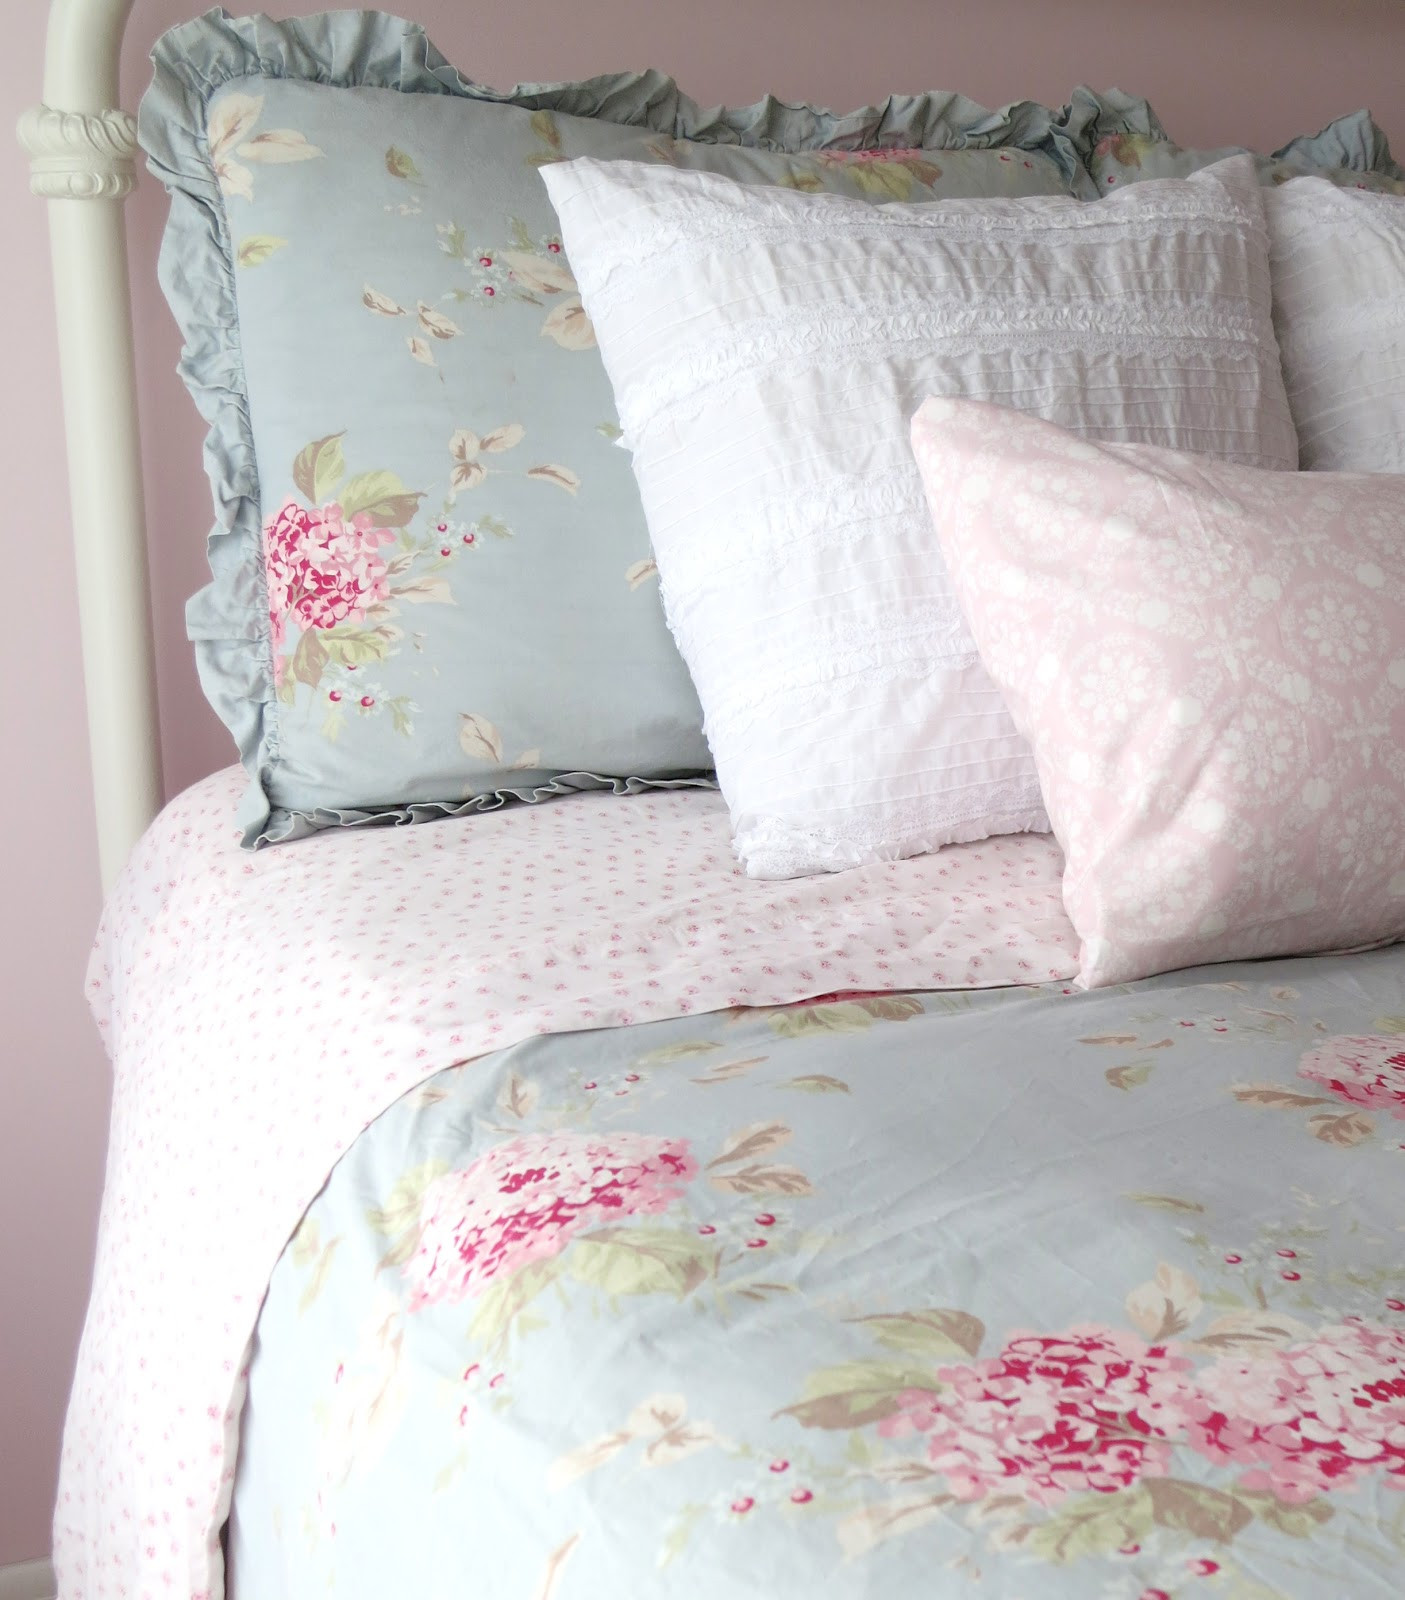 Best ideas about Simply Shabby Chic Sheet . Save or Pin Simply Shabby Chic Bedroom Furniture Now.